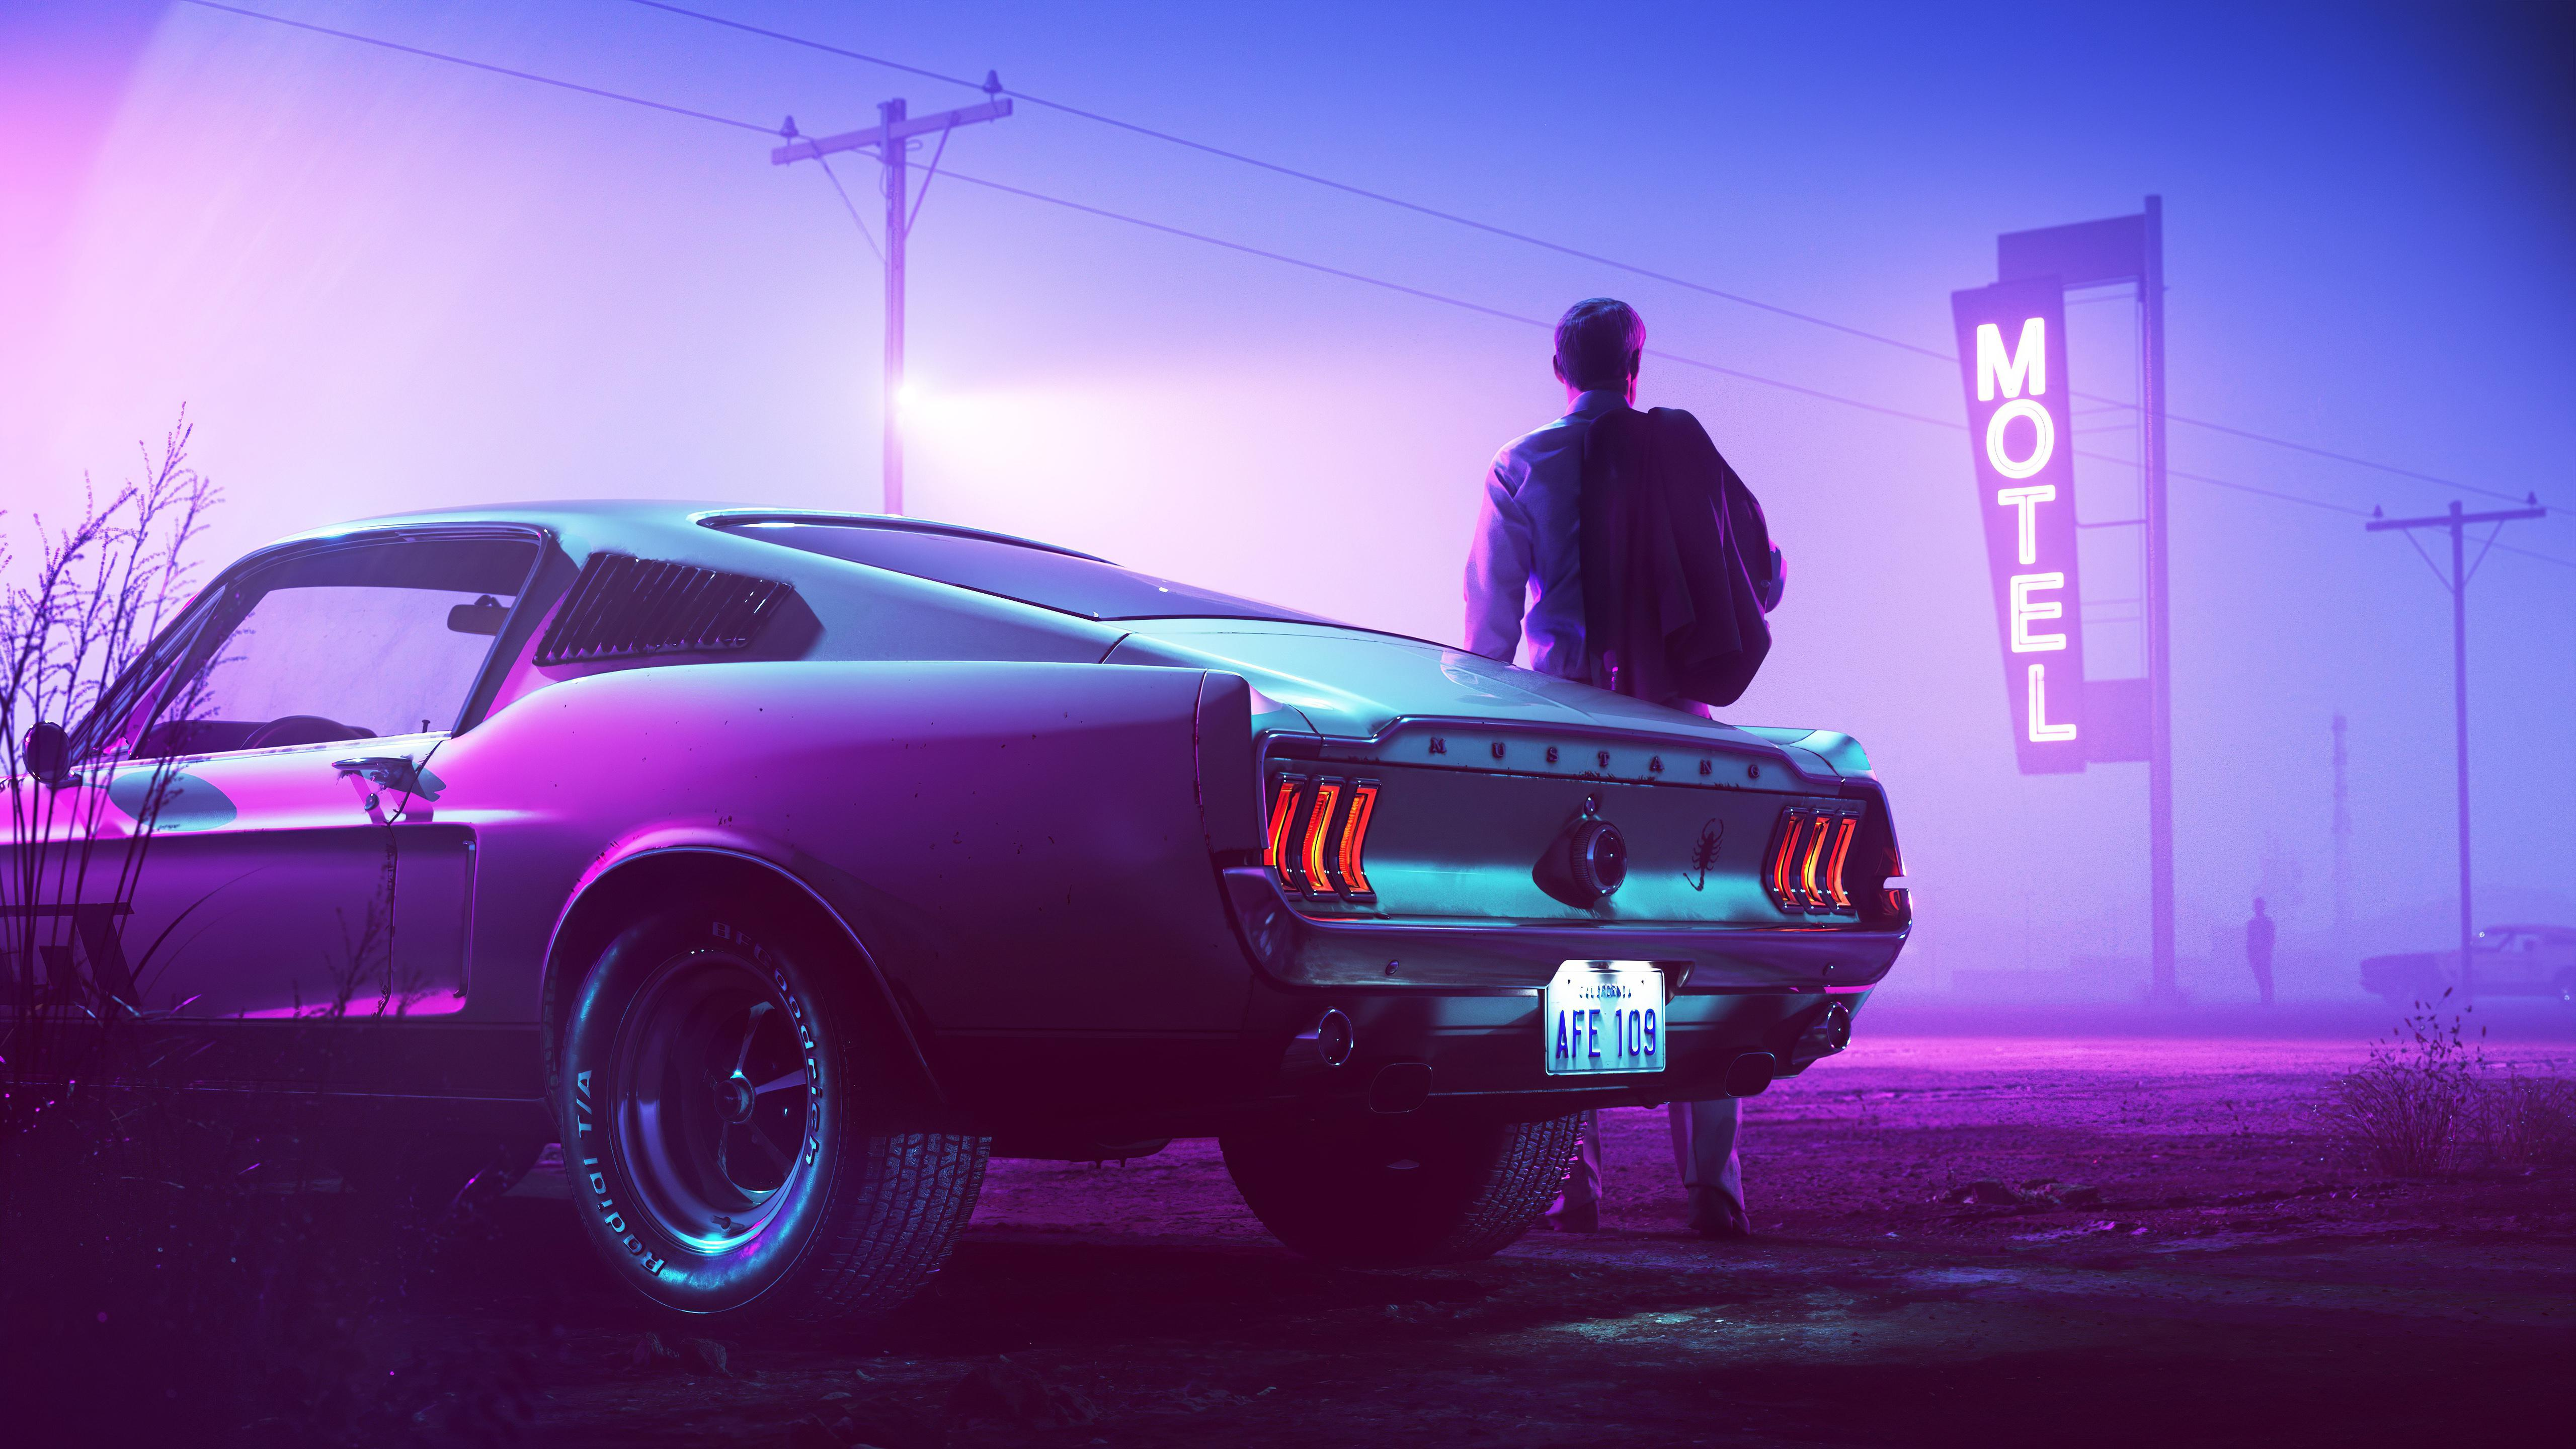 Whether you cover an entire room or a single wall, wallpaper will update your space and tie your home's look. Ps4 4k Hd Retro Car Wallpapers Wallpaper Cave